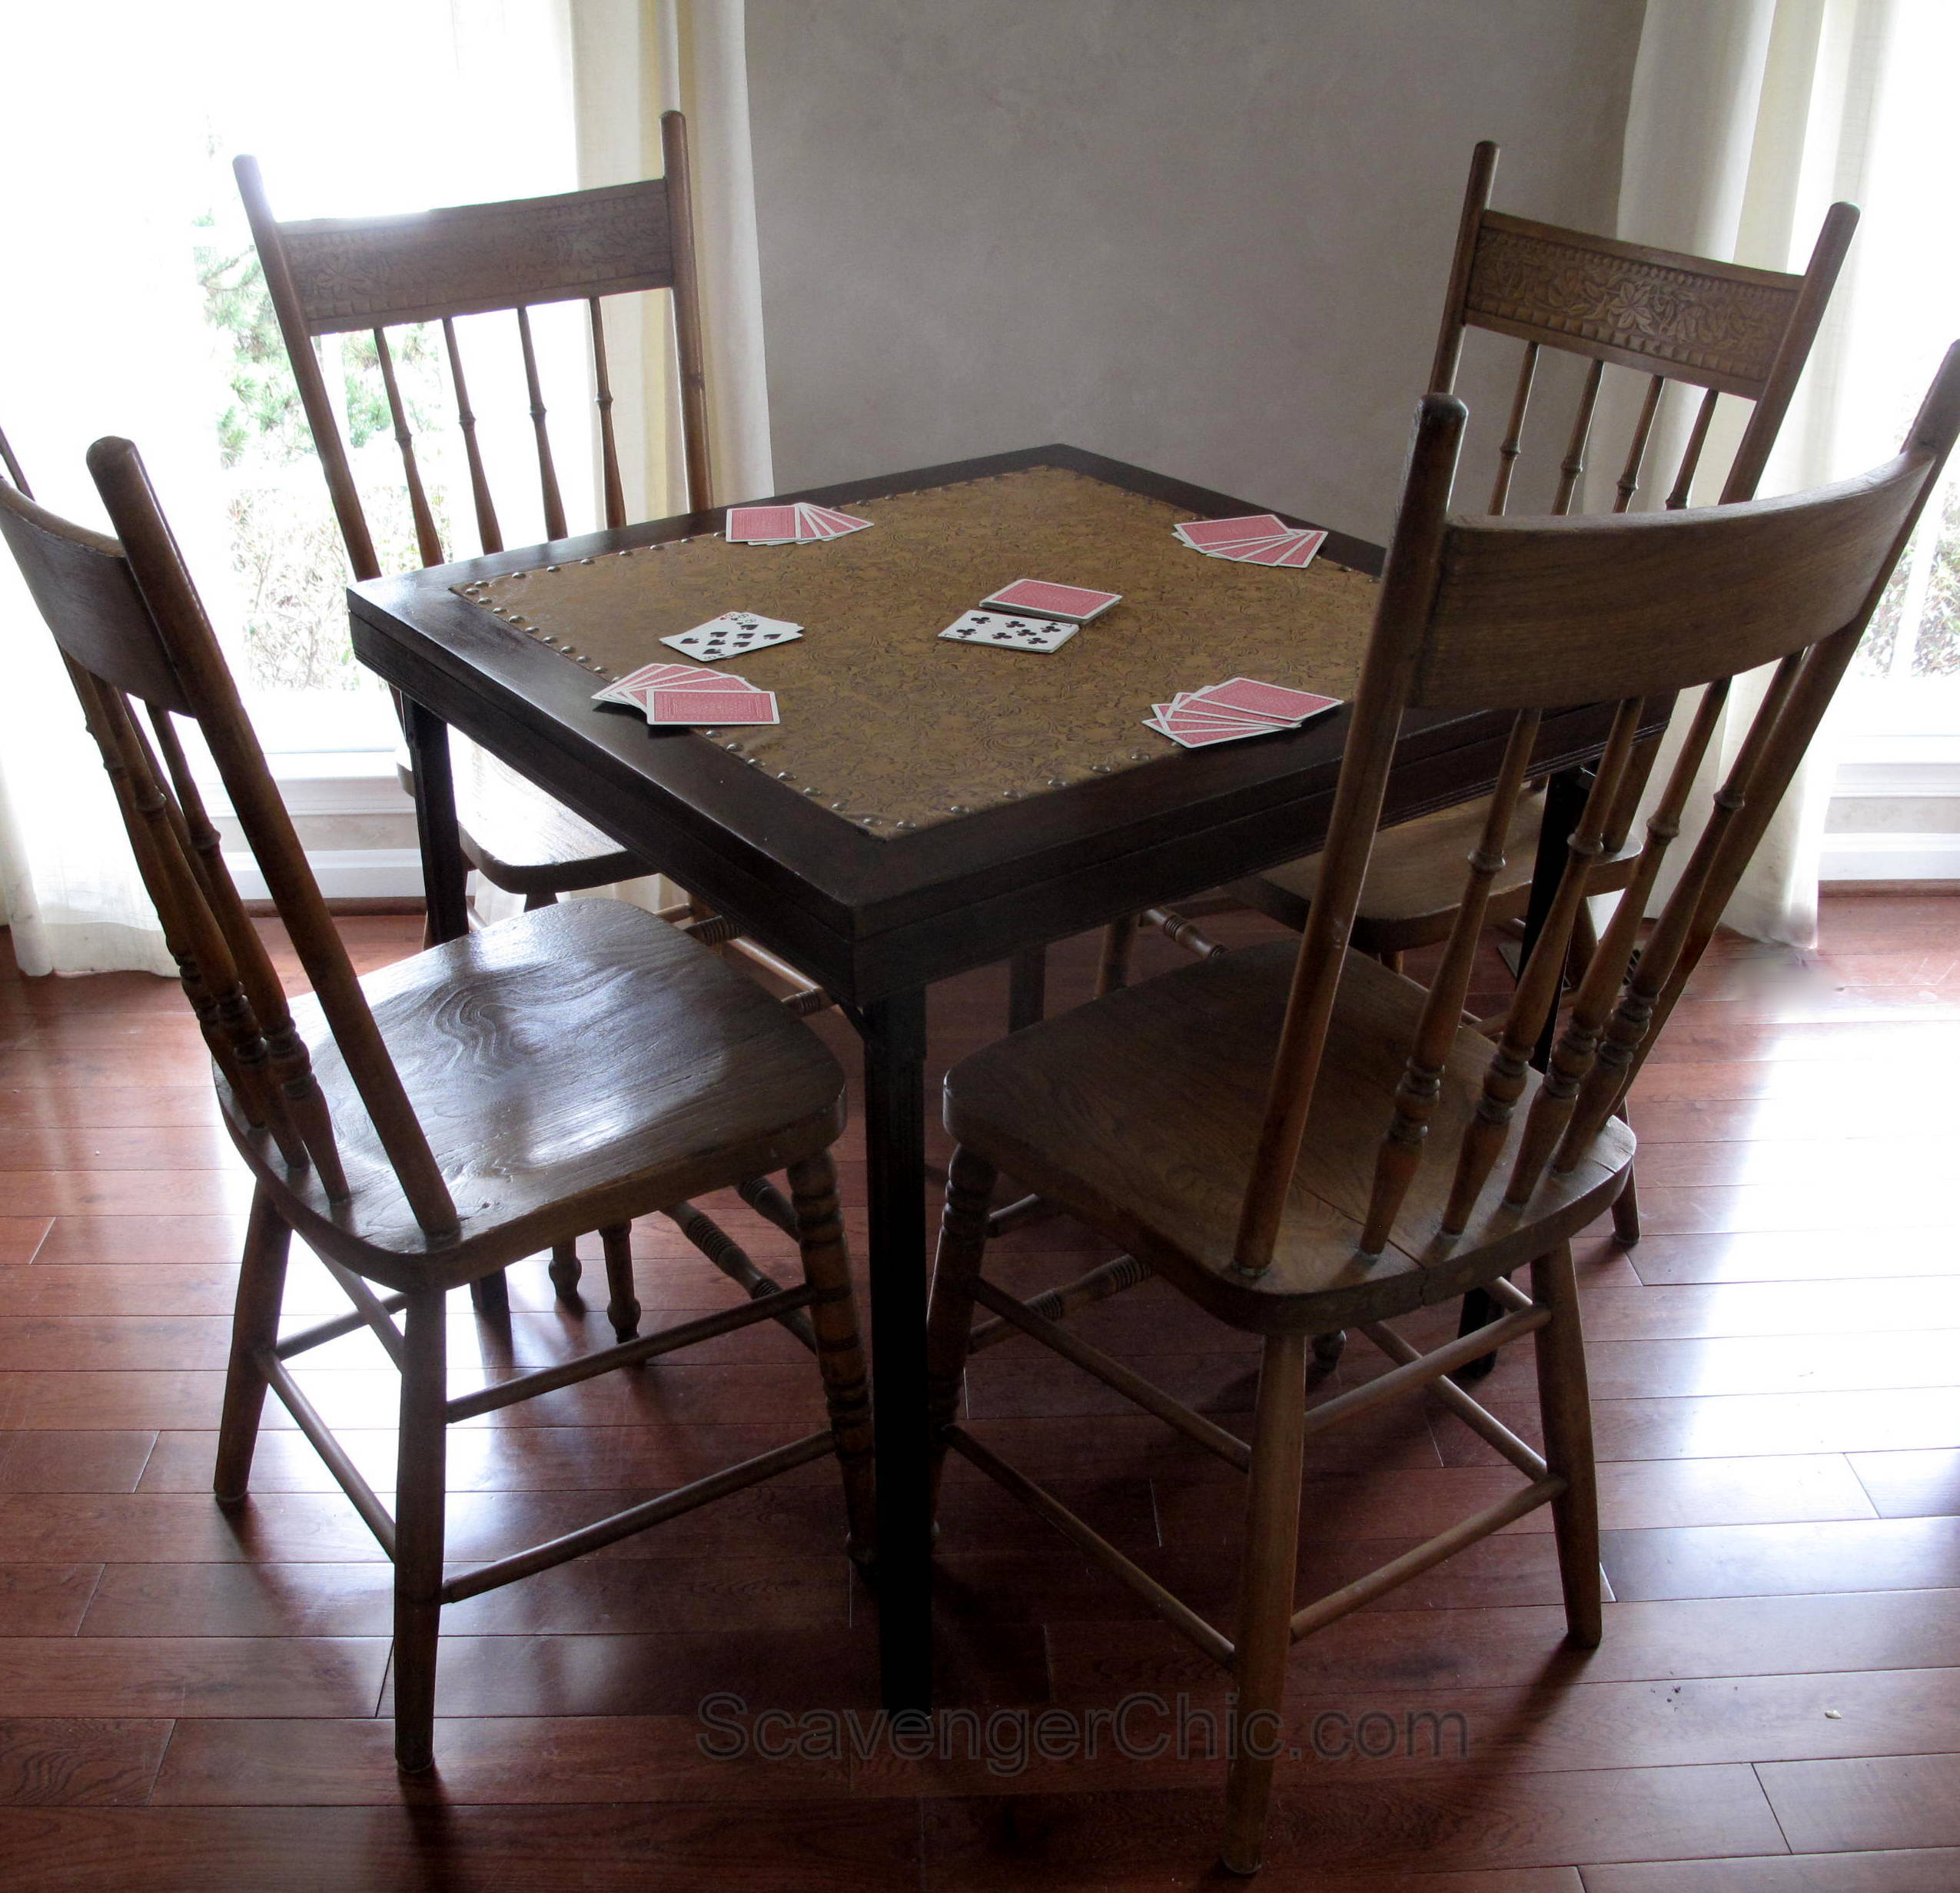 Vintage card table for that